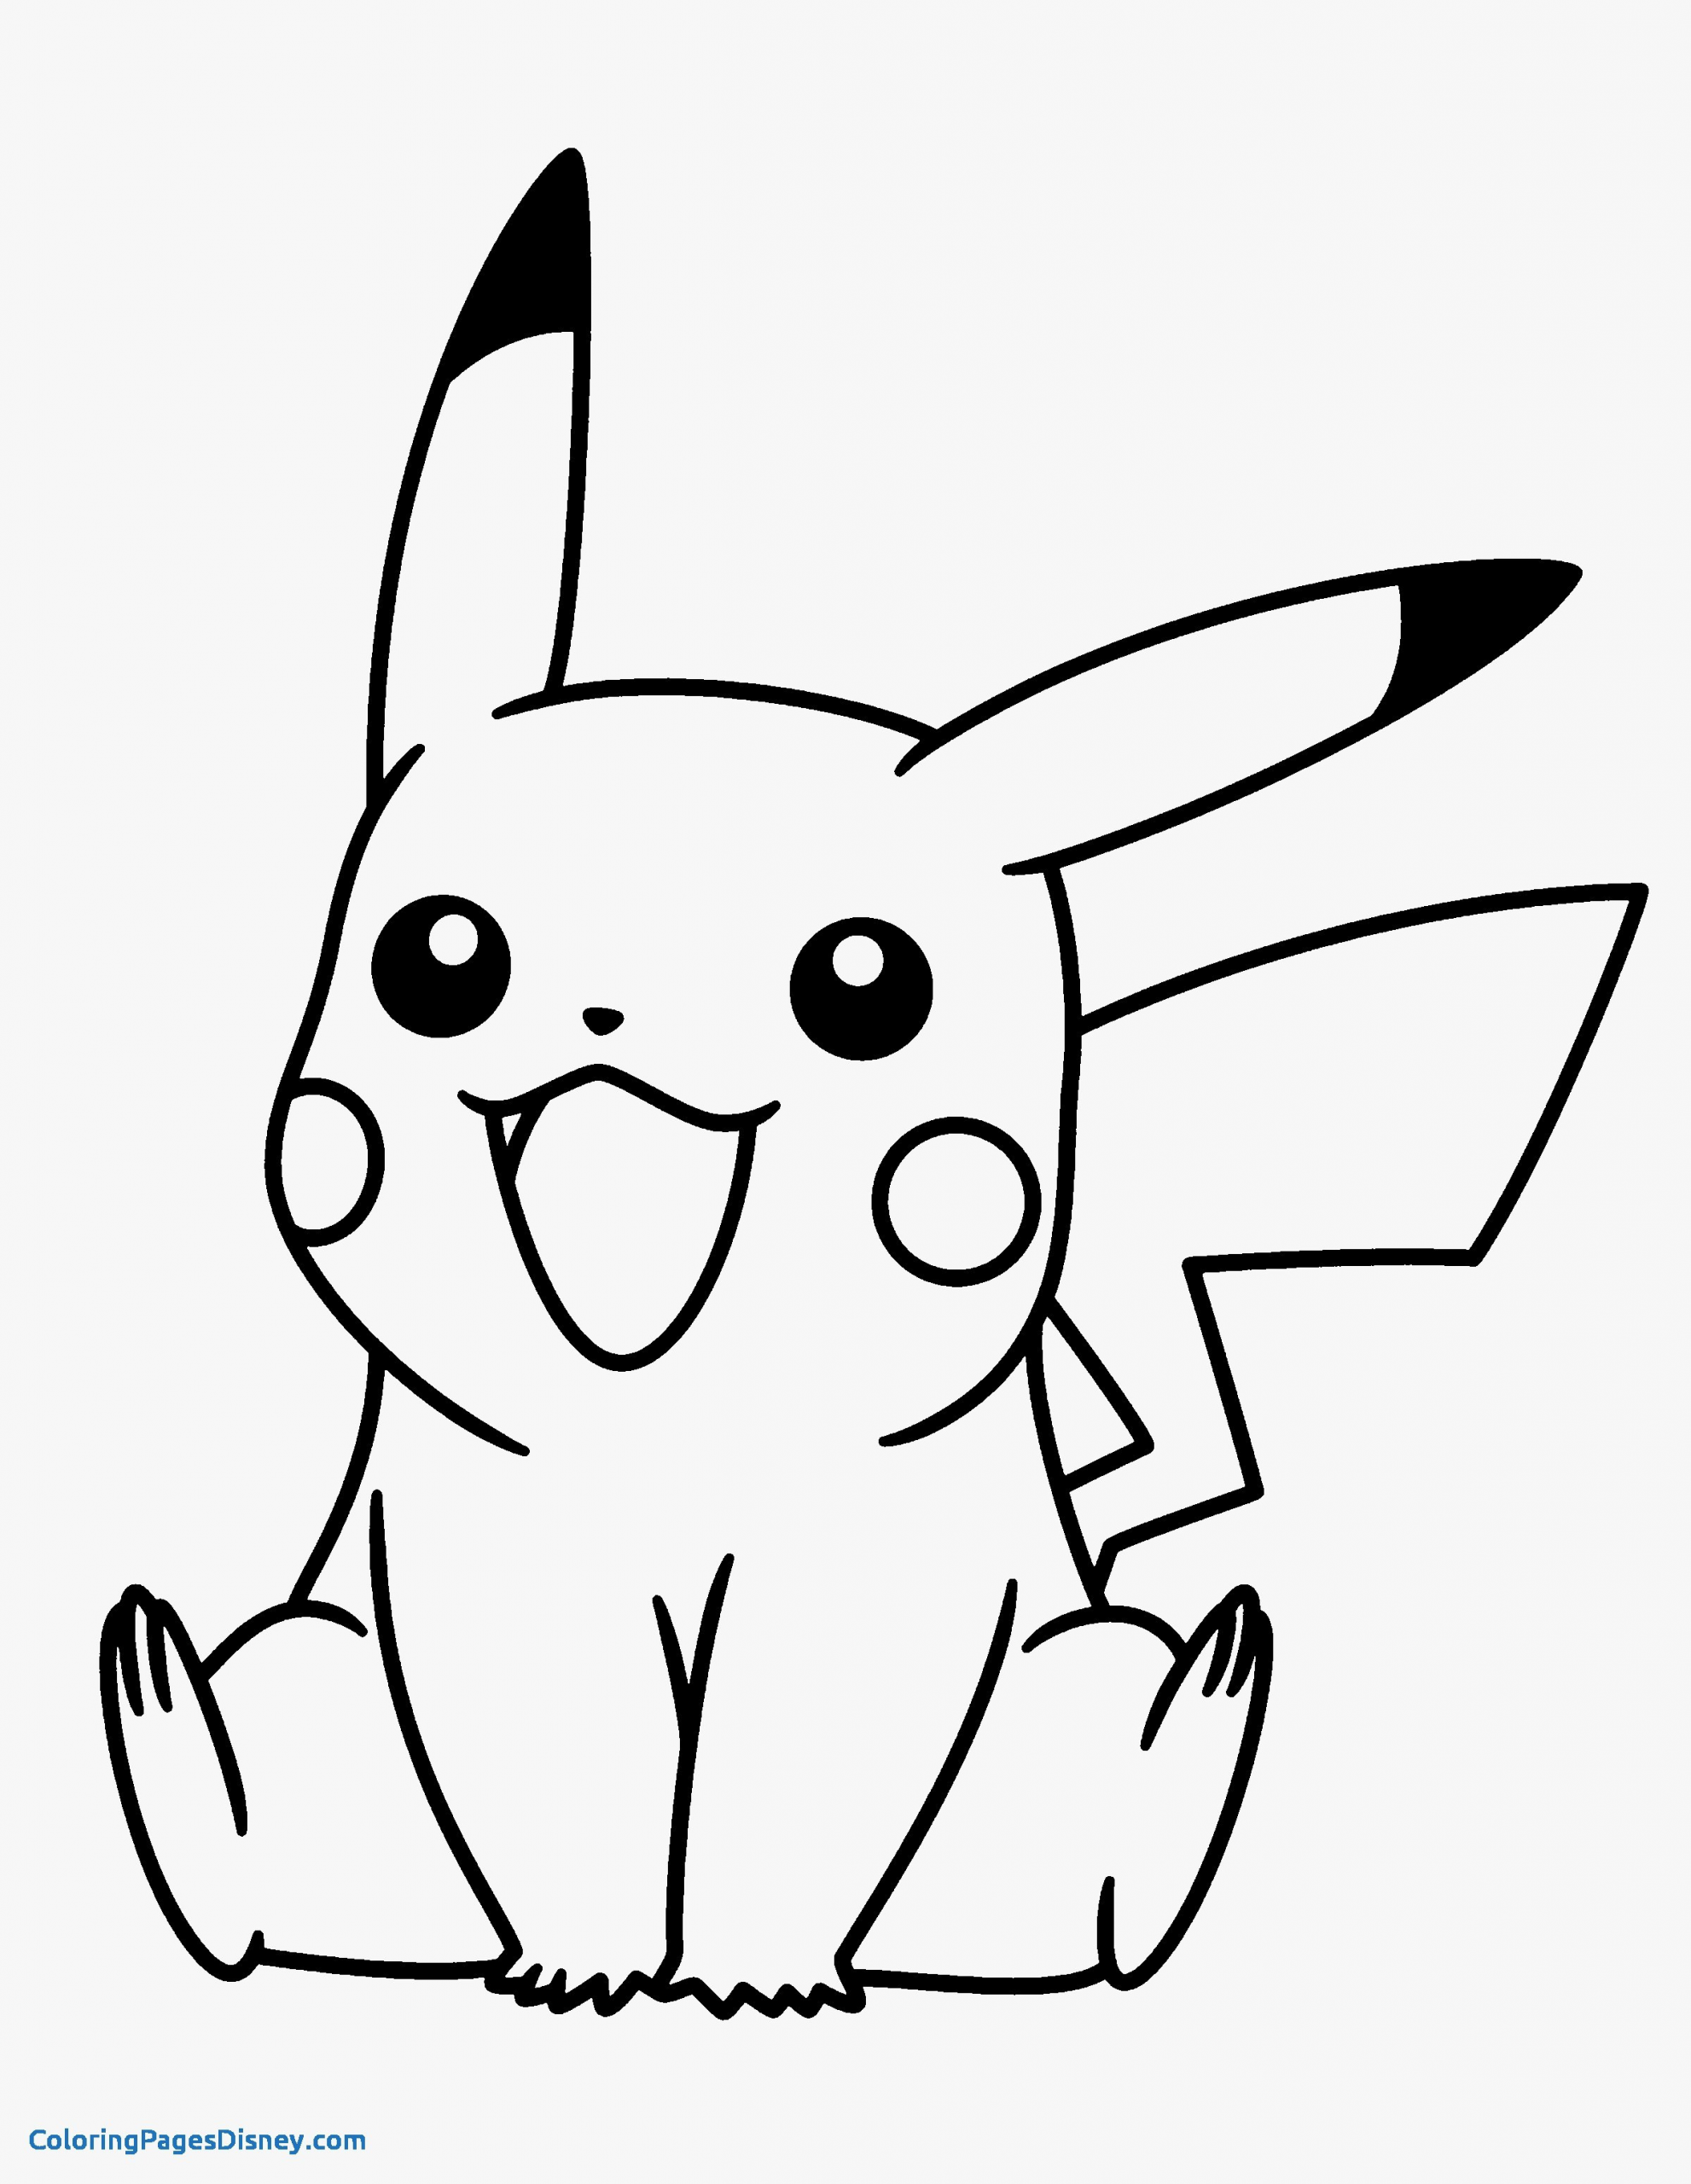 Pokemon Coloring Page Pikachu Youngandtae Com Pikachu Coloring Page Kitty Coloring Cartoon Coloring Pages